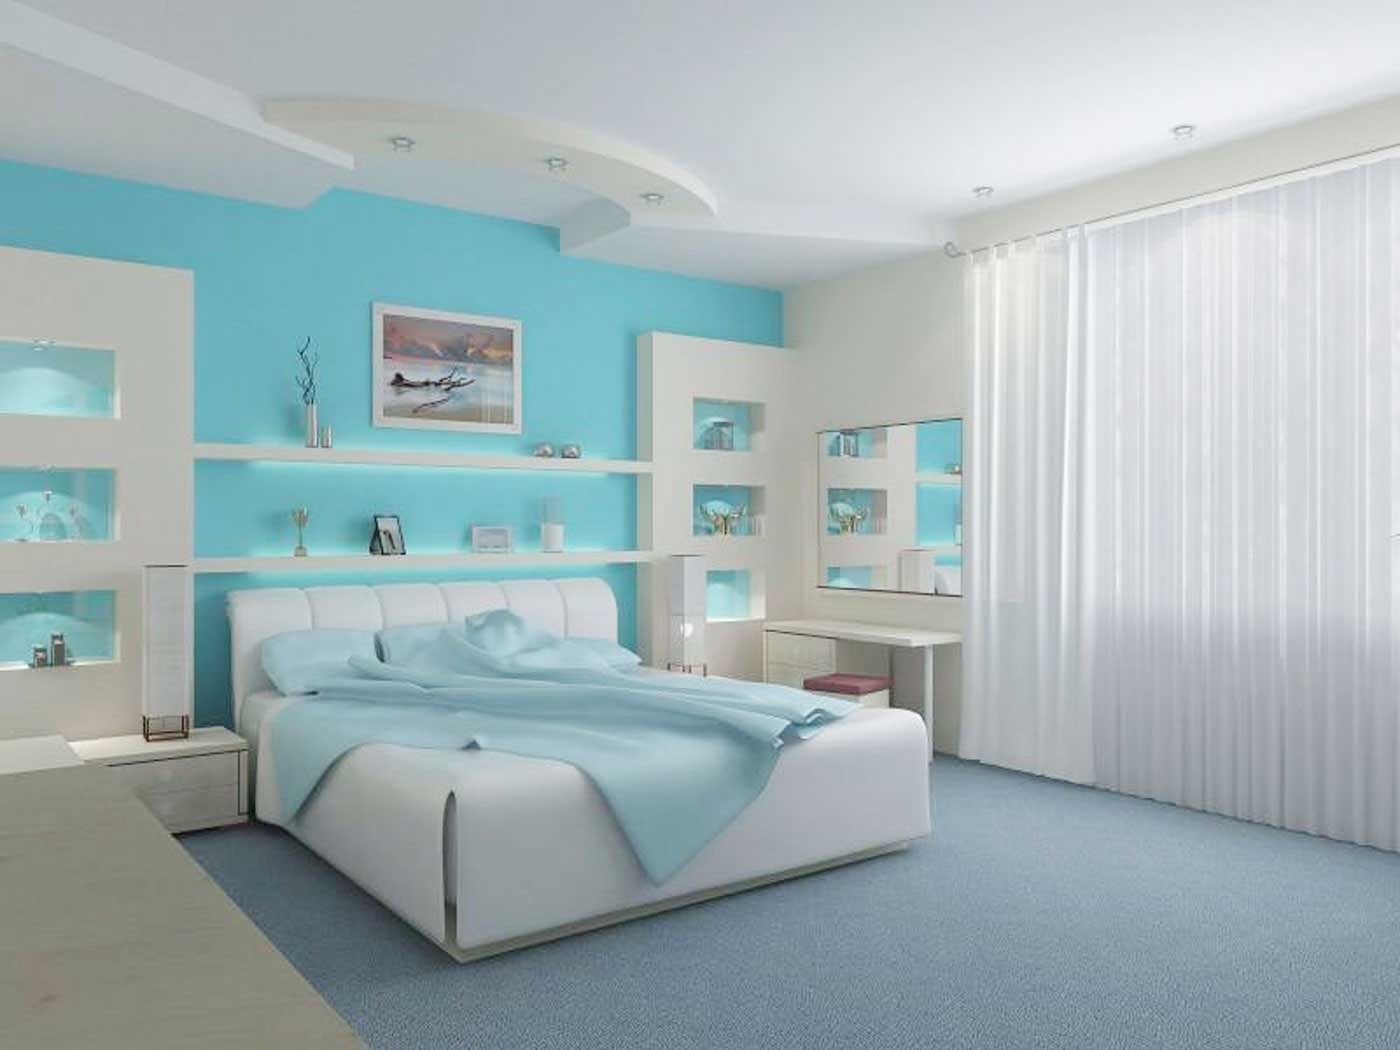 Magnificent Teal Blue And White Interior Paint Ideas For Master Bedroom With Splendid Sapphire Color Flooring Ideas Also Pretty White Window Curtain Rod Double Design Ideas